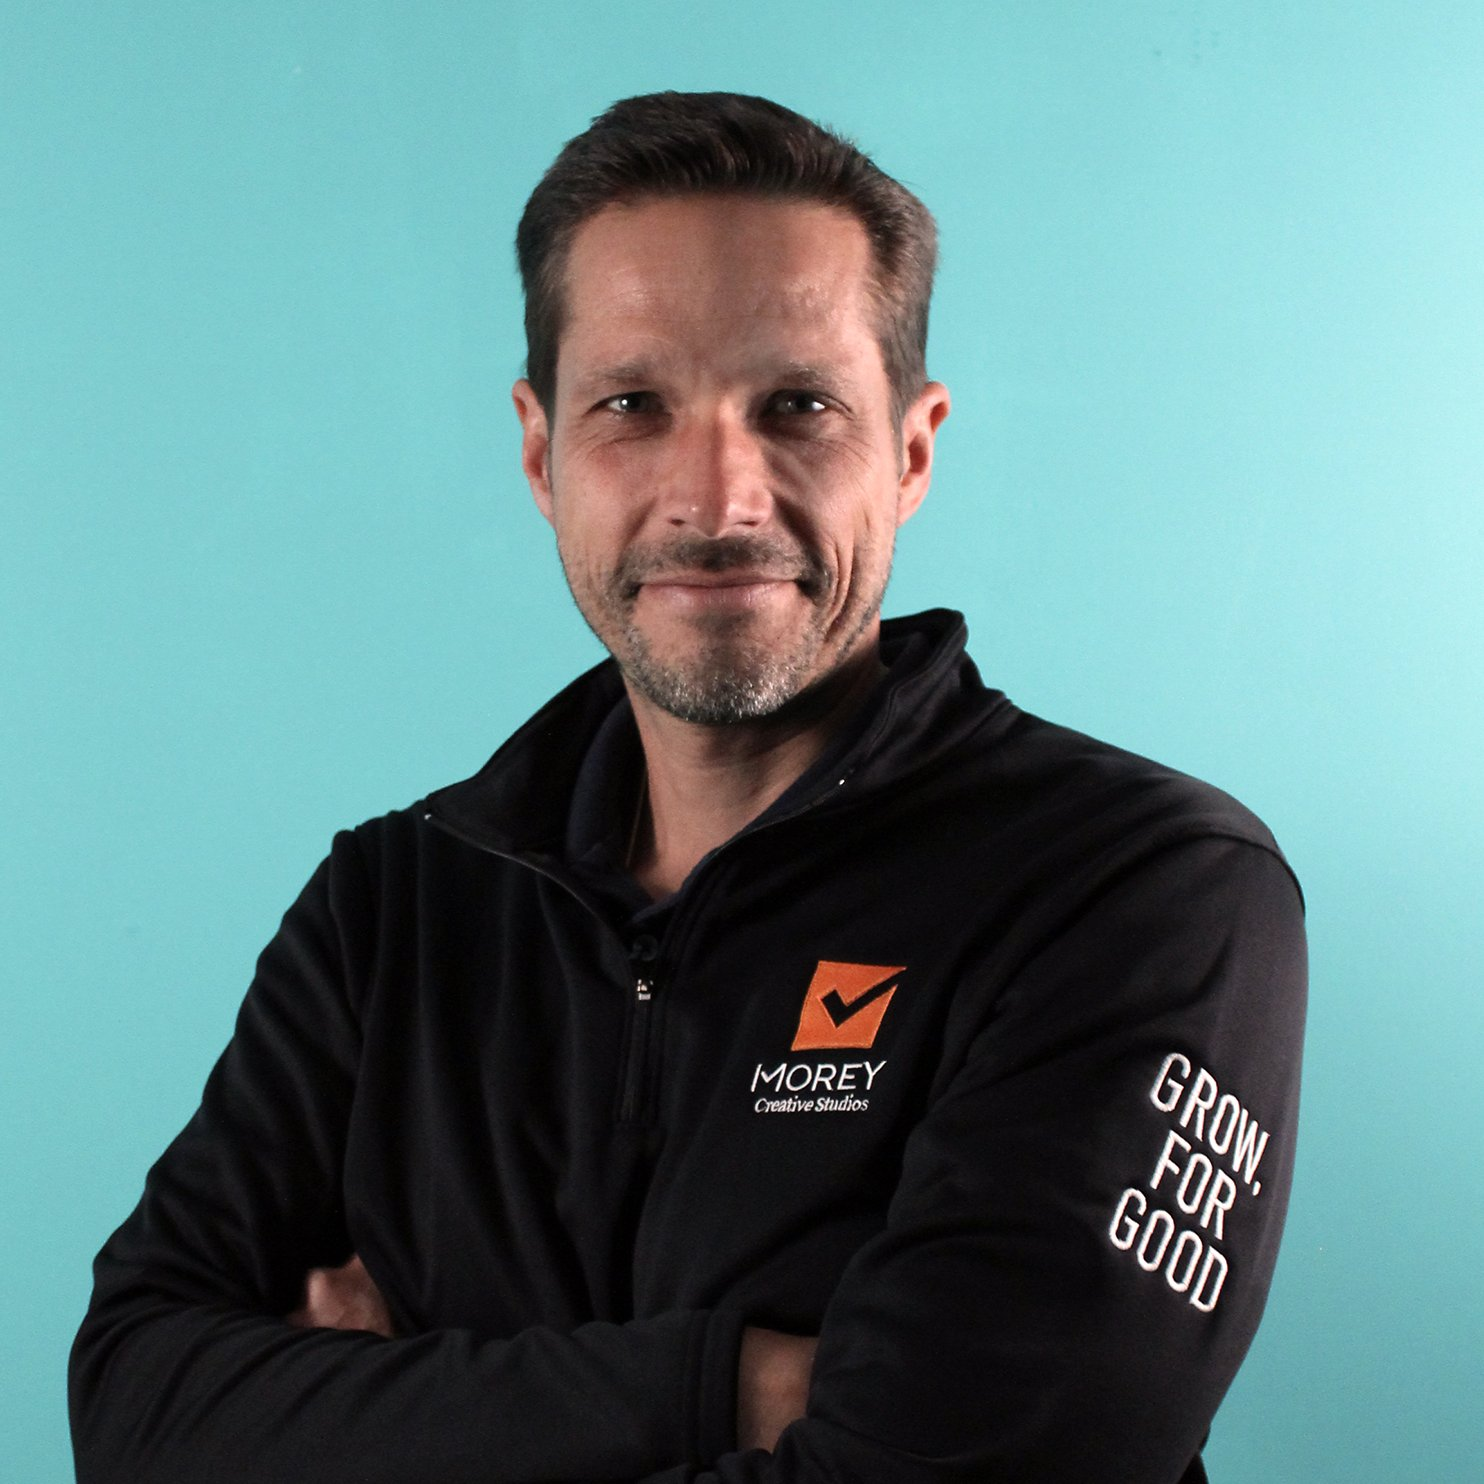 Jed Morey, Founder & CEO